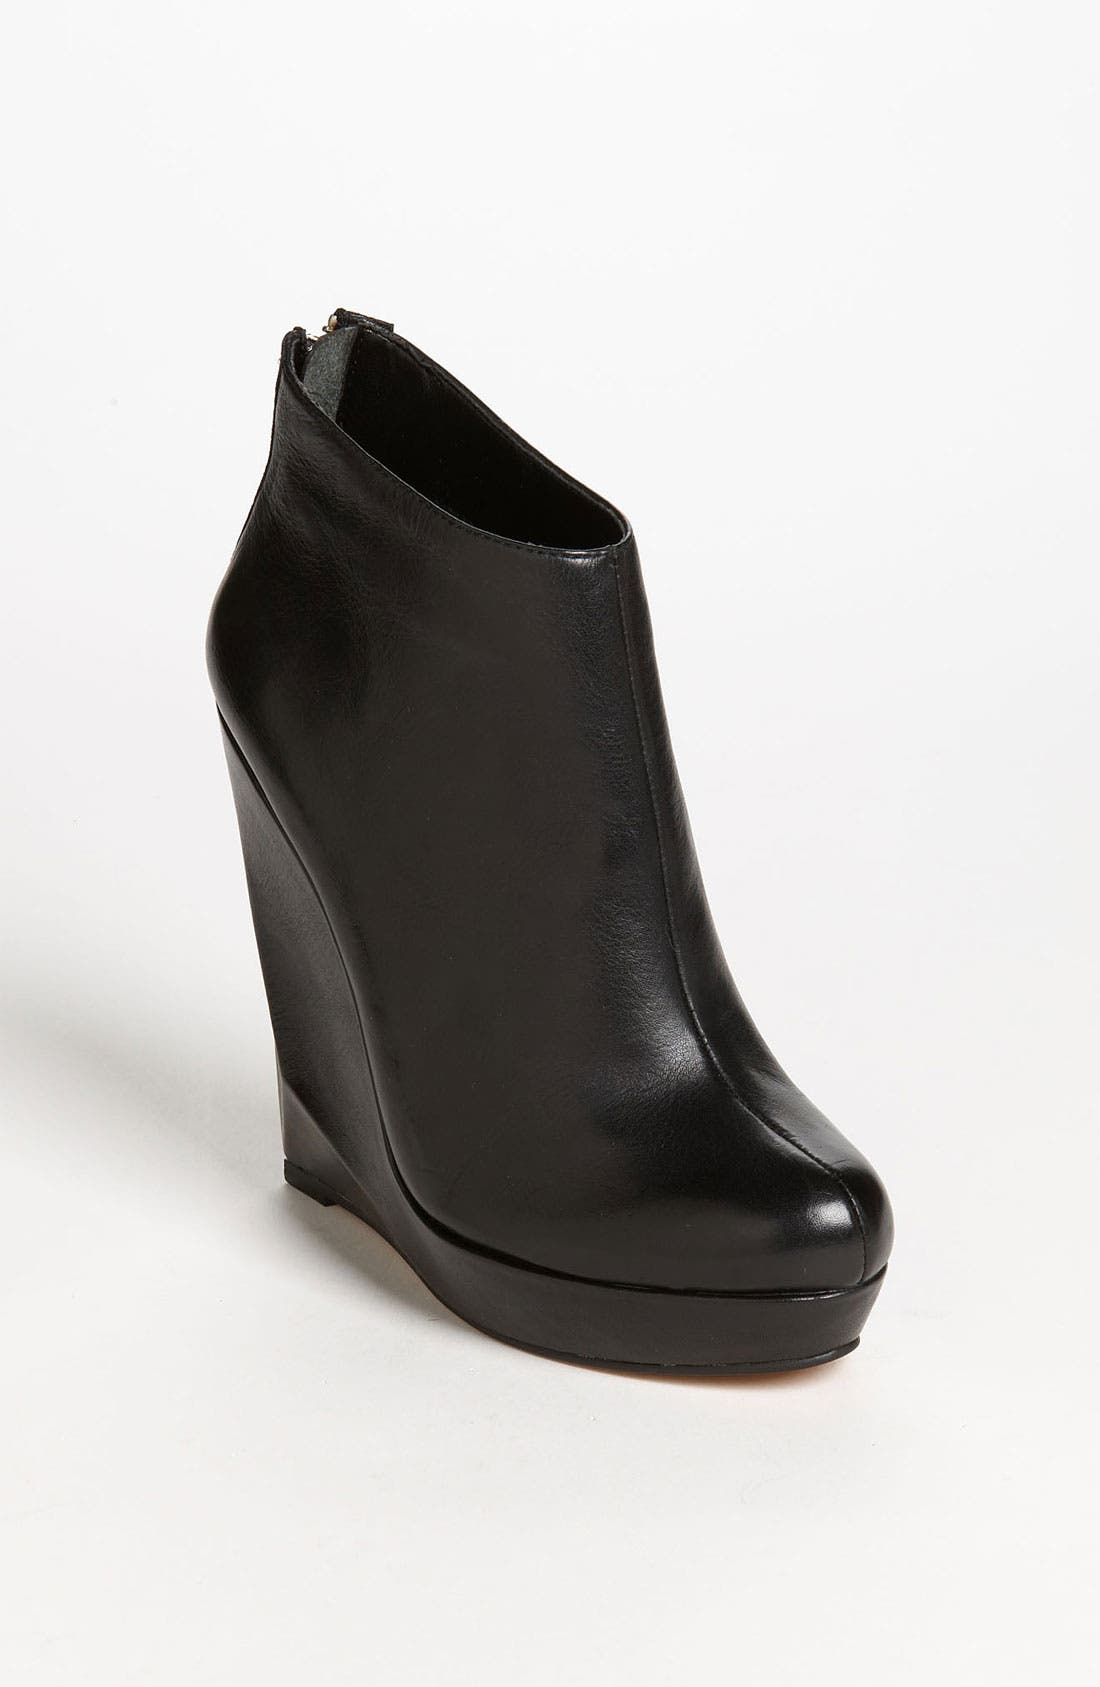 Alternate Image 1 Selected - Dolce Vita 'Fury' Bootie